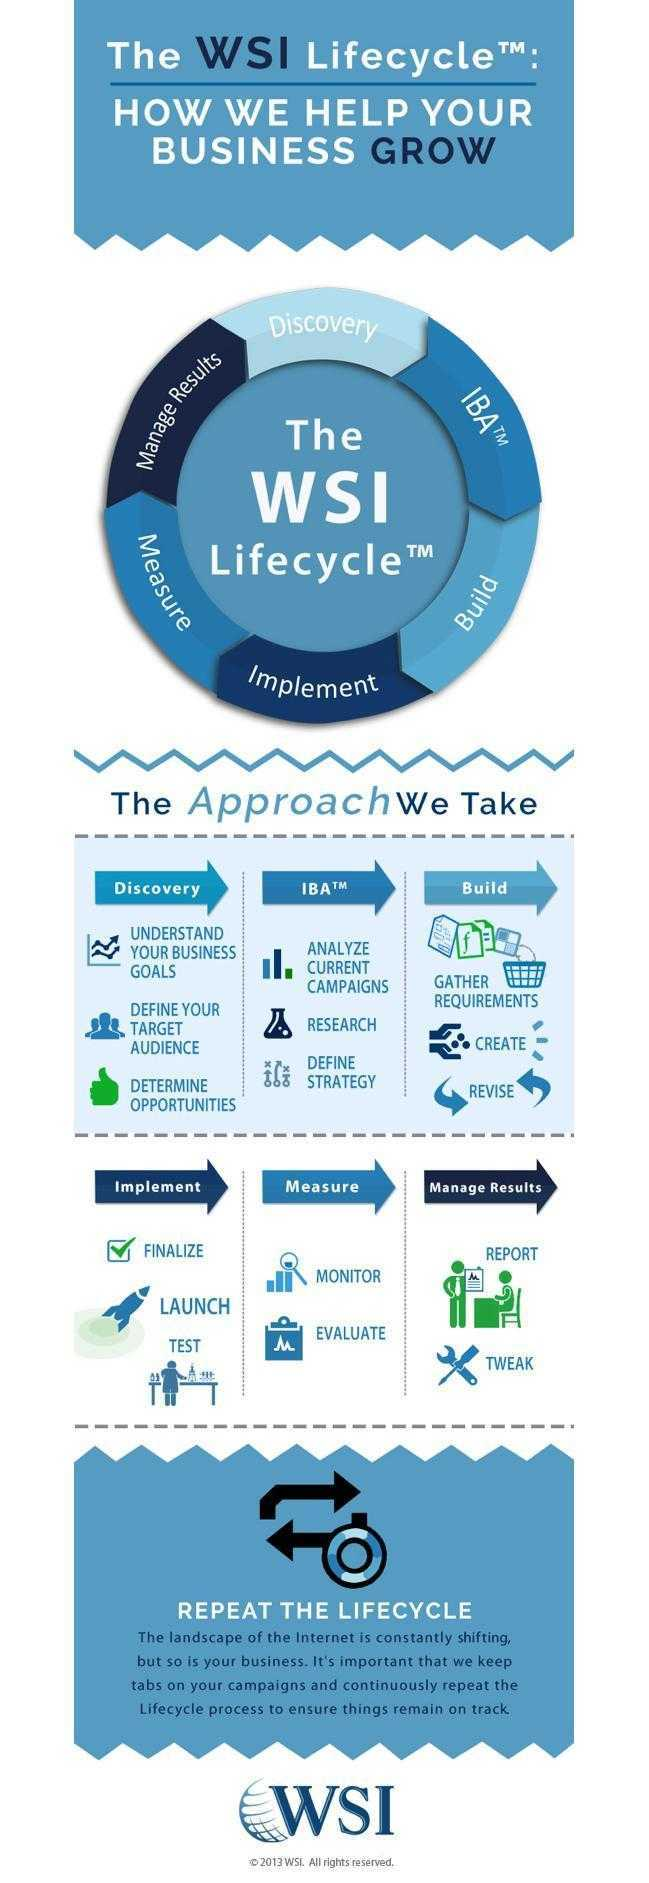 How The WSI Lifecycle Helps Your Business